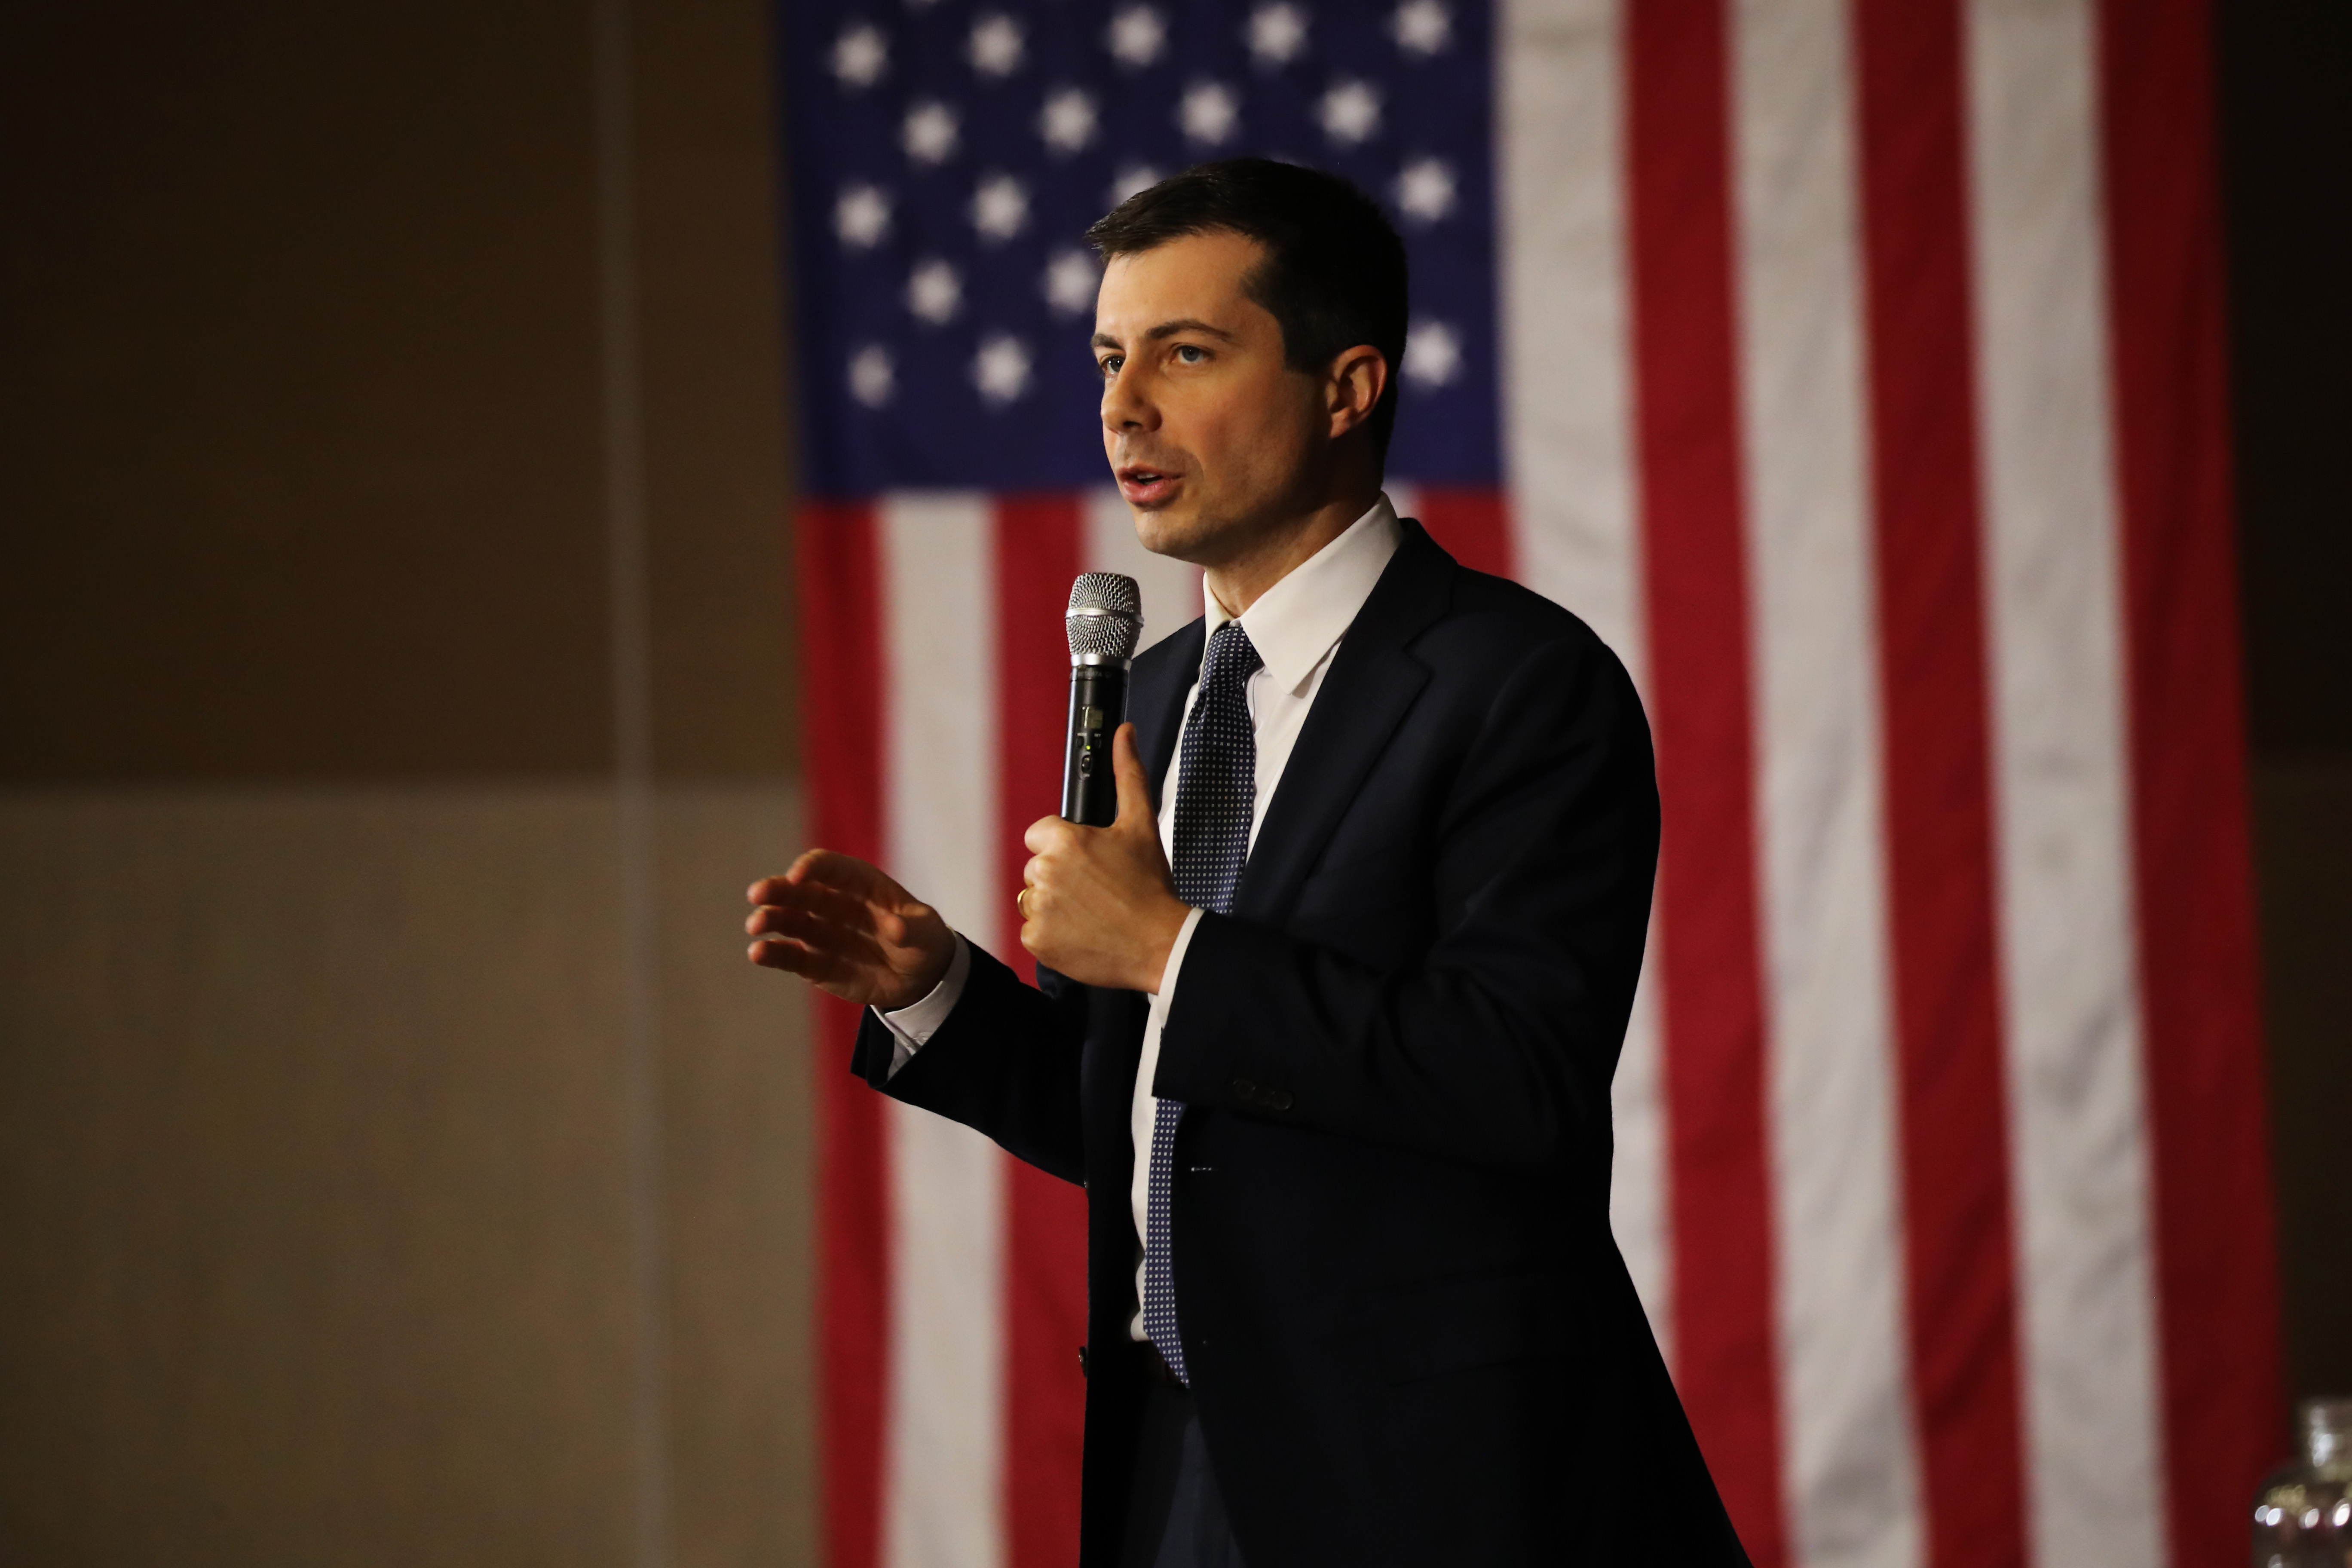 What a stripper pole controversy says about the Buttigieg campaign